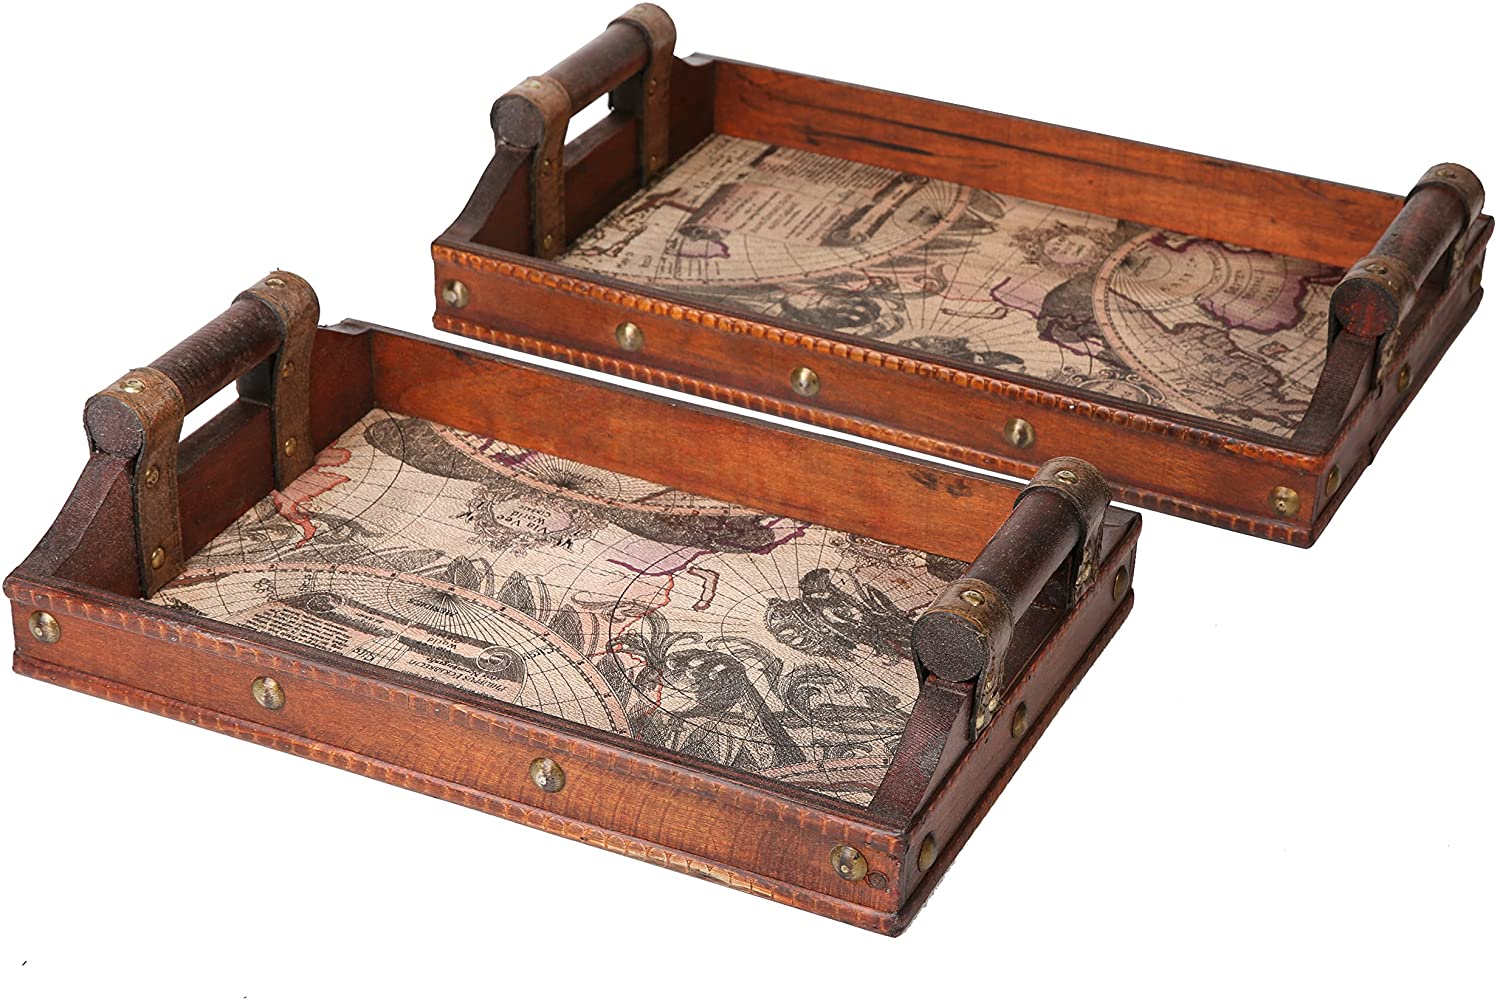 SLPR Decorative Worldly Wooden Serving Tray Set with Handles (Set of 2) | Coffee Table Organizer Travel Tray